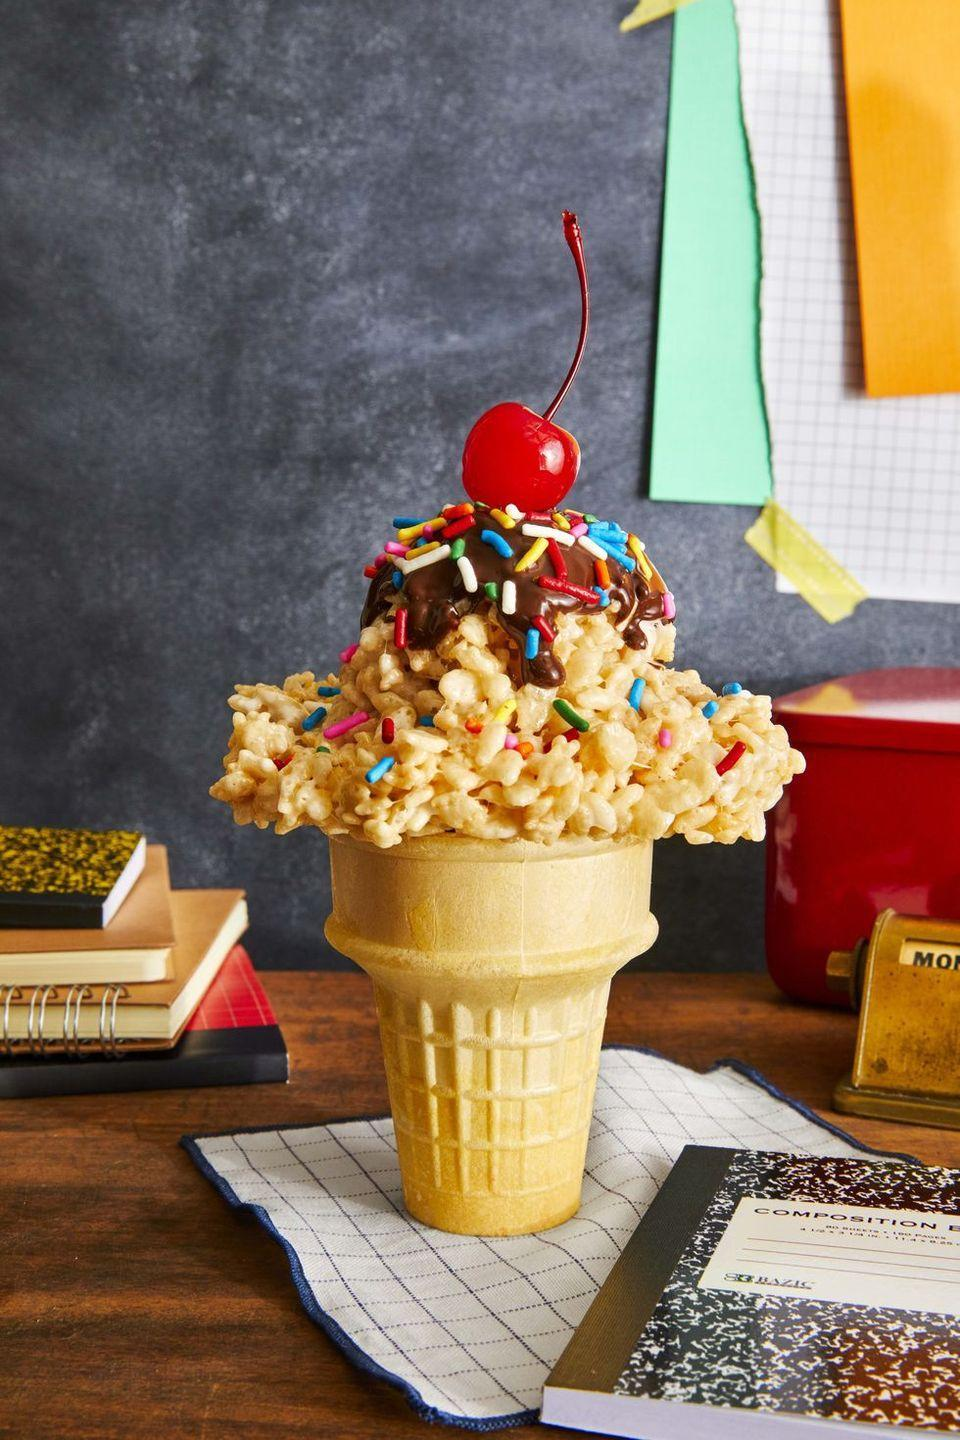 """<p>Pile Rice Krispies treats into ice cream cones for sweet, fake-out dessert!</p><p><em><a href=""""https://www.countryliving.com/food-drinks/a33553753/cereal-ice-cream-cones/"""" rel=""""nofollow noopener"""" target=""""_blank"""" data-ylk=""""slk:Get the recipe from Country Living »"""" class=""""link rapid-noclick-resp"""">Get the recipe from Country Living »</a></em></p>"""